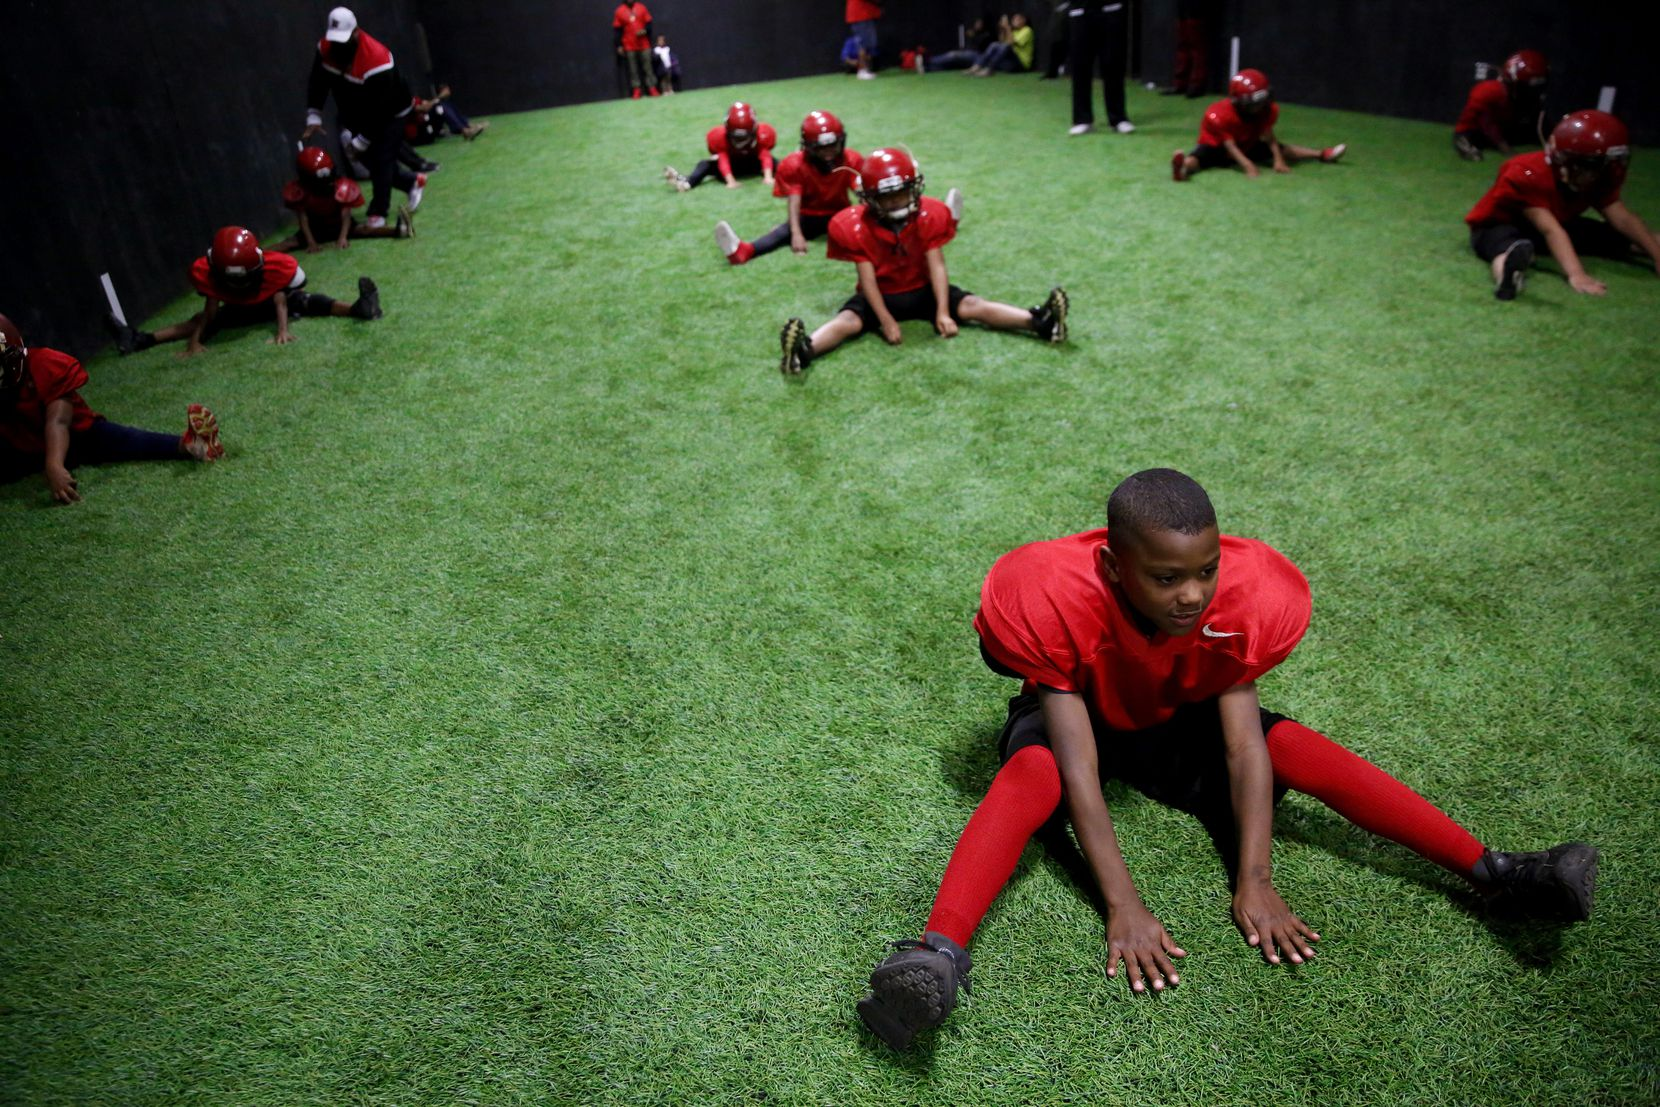 Marquay Jerrels, 8, stretches with his team during a Hamilton Park Bobcats practice. The 7- and 8-year-old Bobcats had a big year, advancing to the third round of the state playoffs.